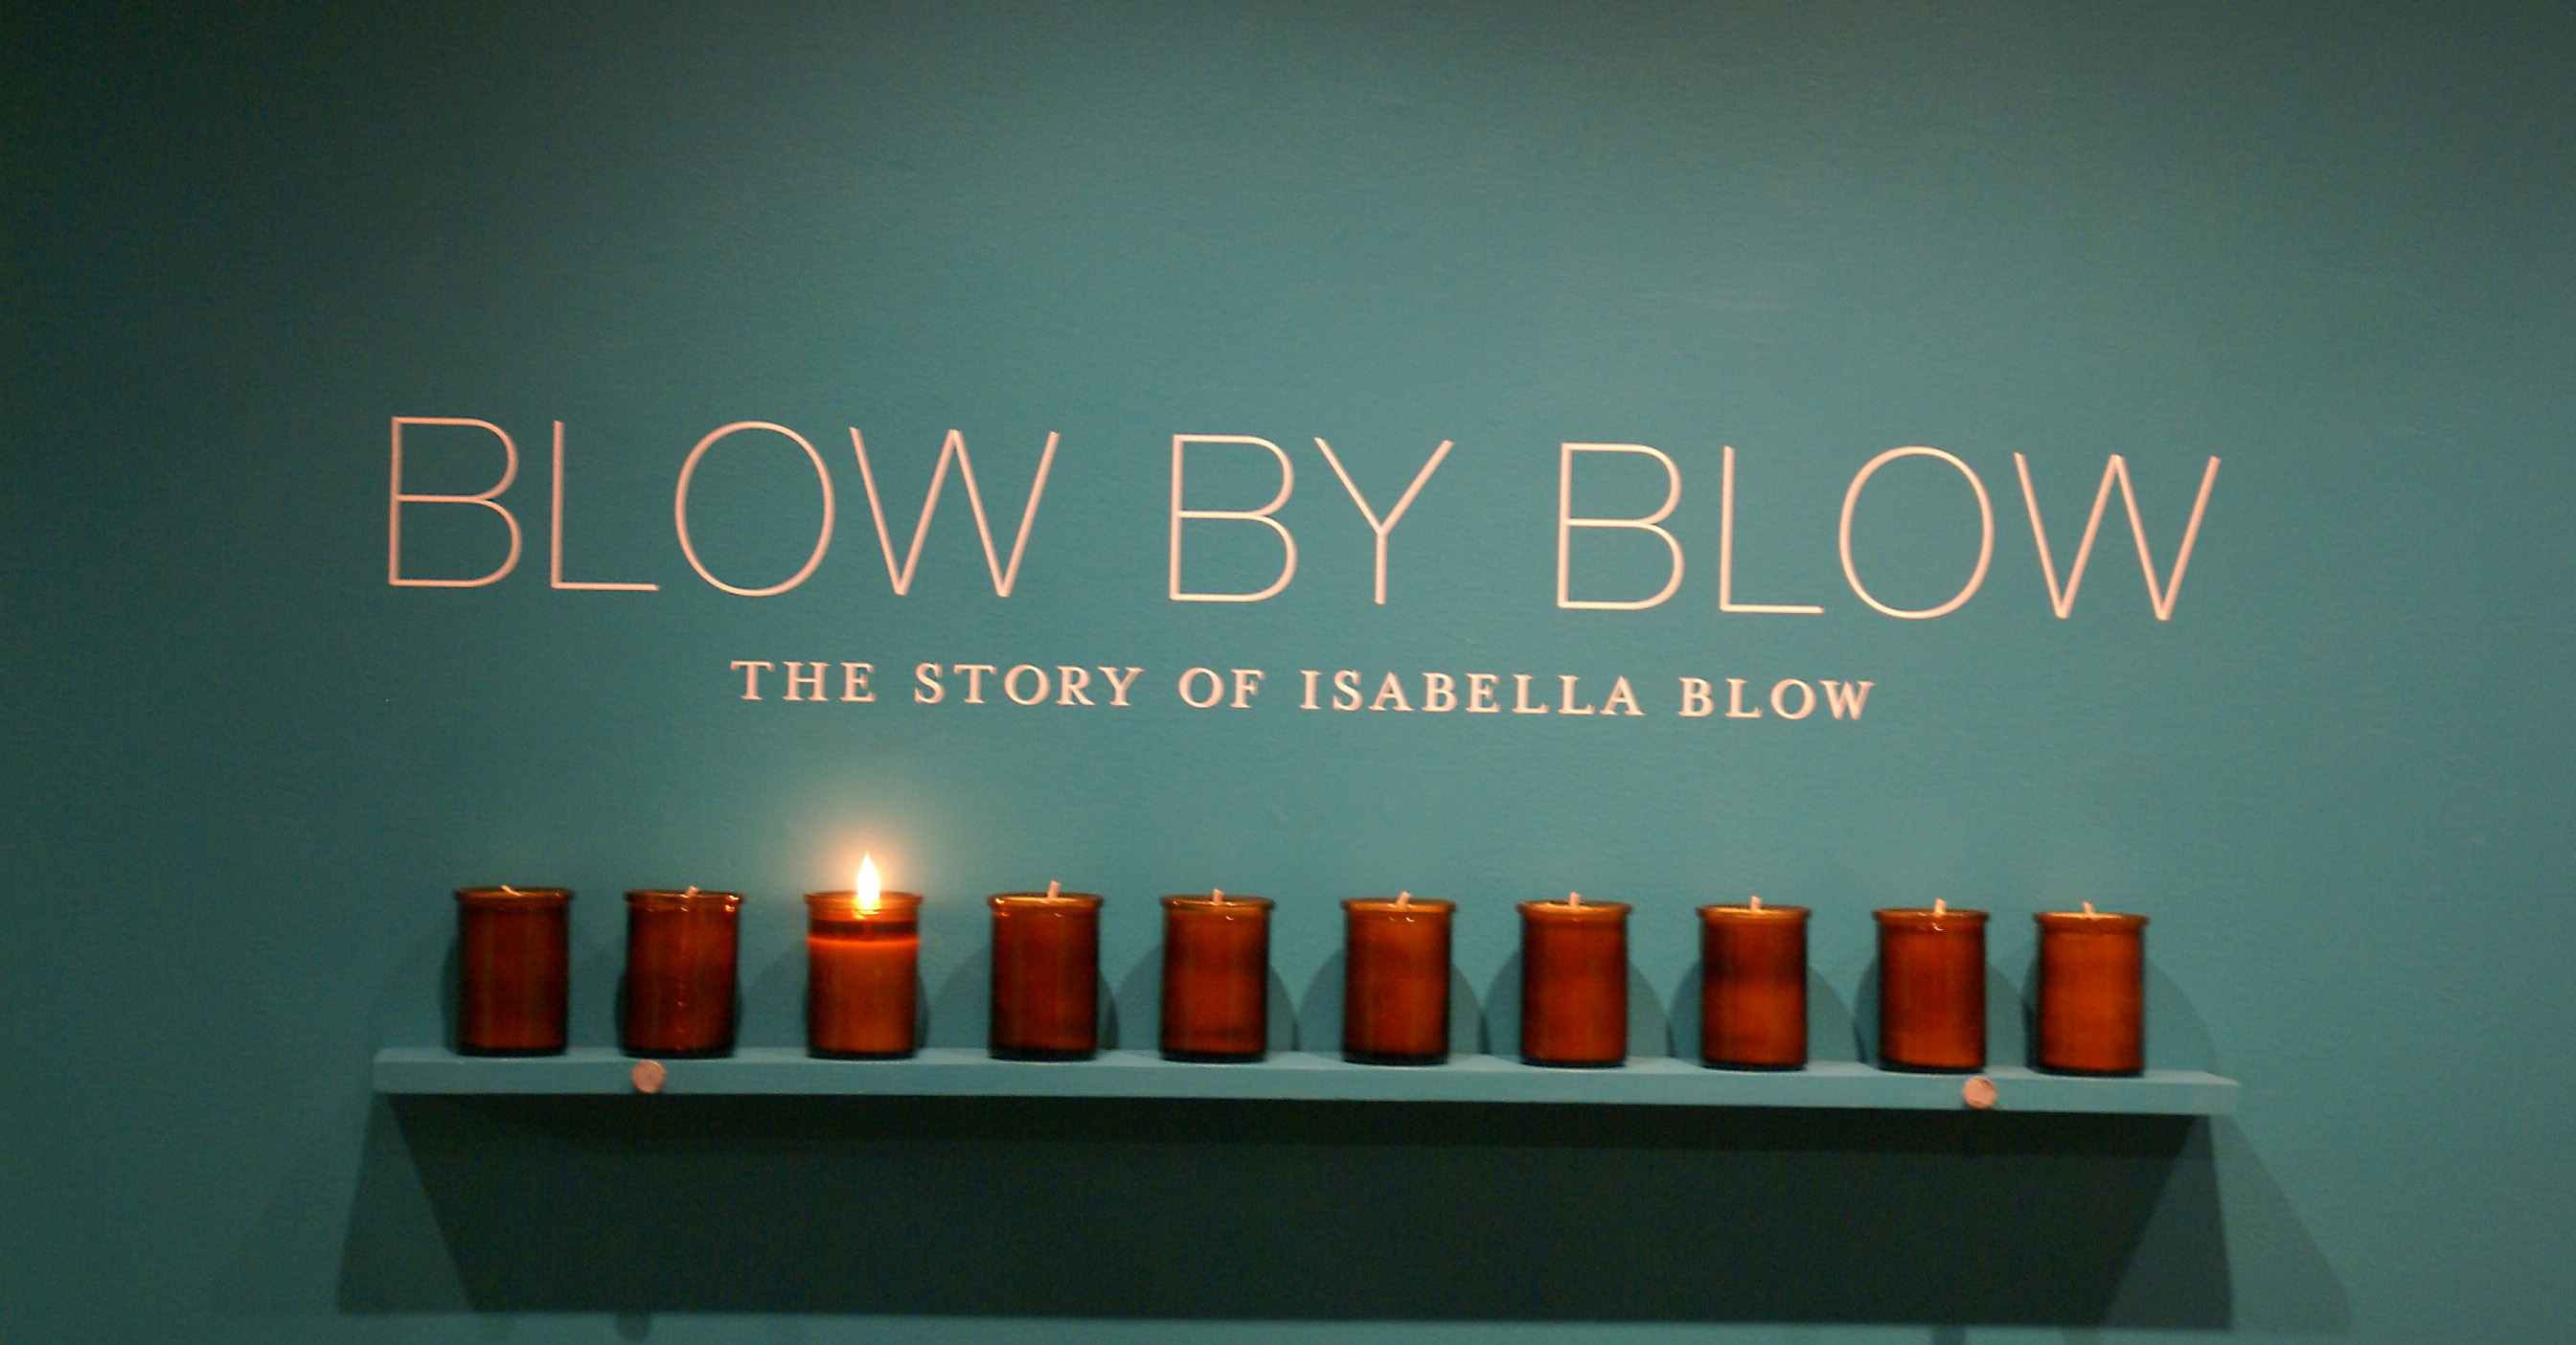 BLOW BY BLOW BOOK LAUNCH AT ANTHROPOLOGIE